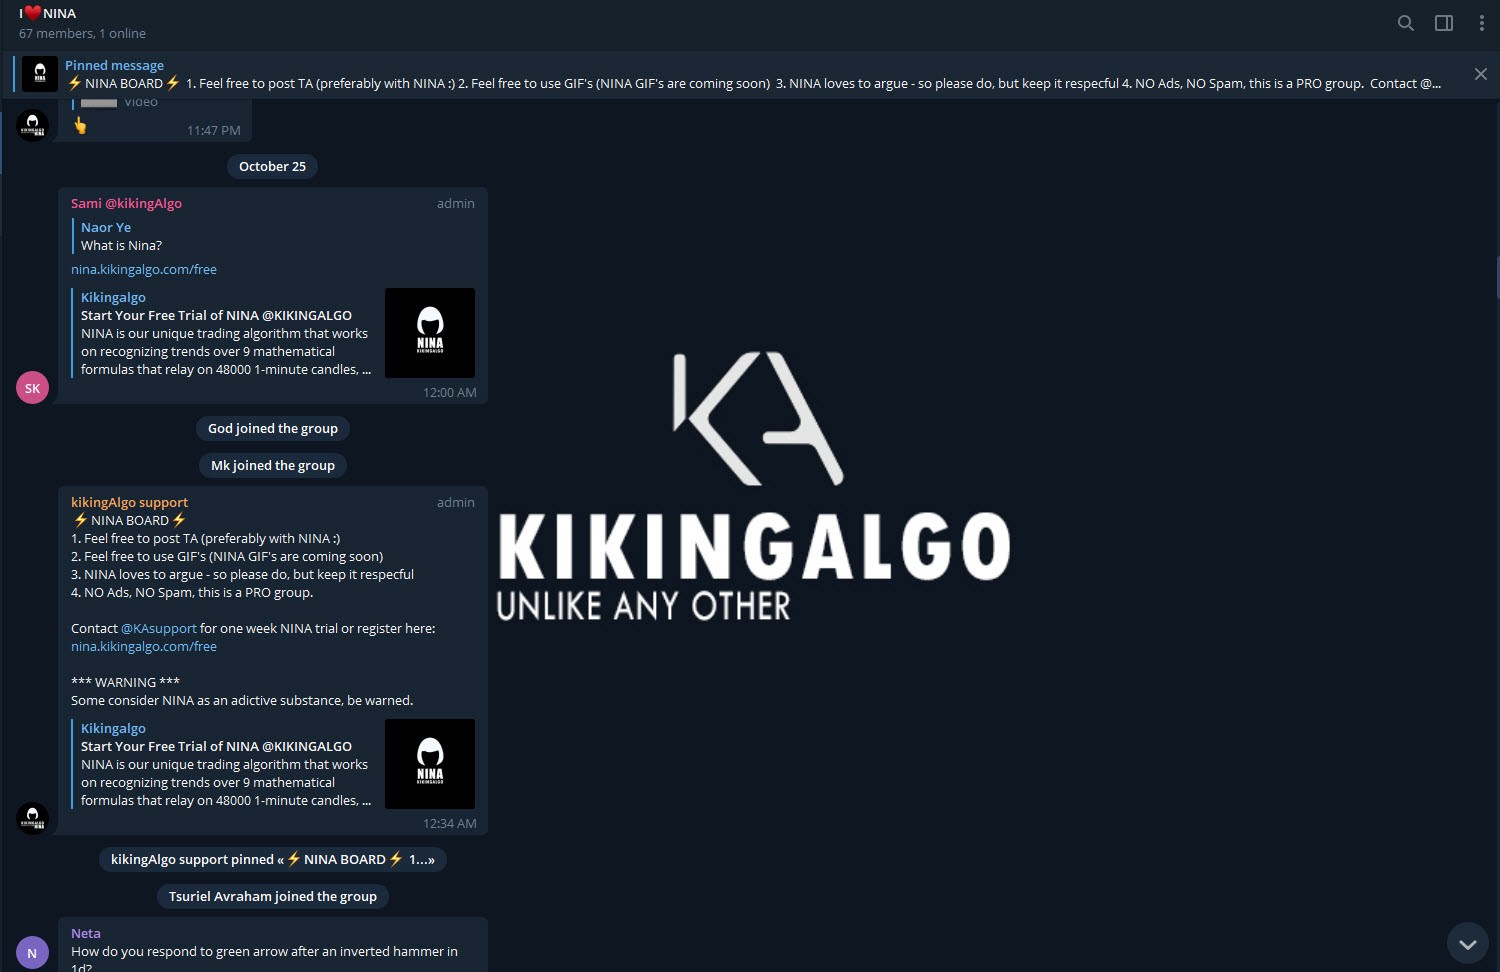 HOW TO USE THE ALGO NINA (with TradingView) - KikingAlgo